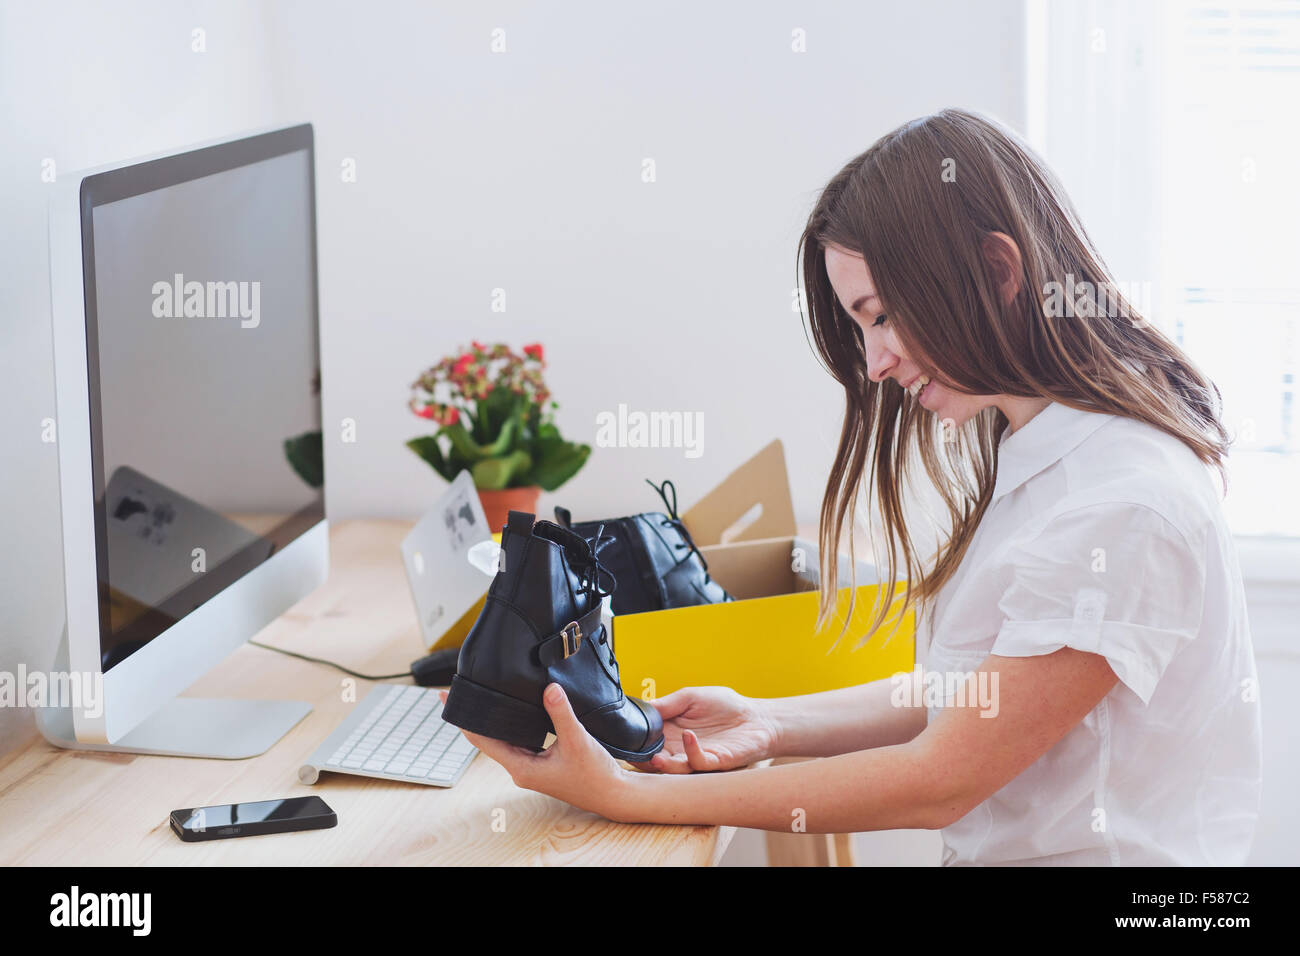 shopping online concept, happy woman opens box with new shoes, ordered by internet - Stock Image